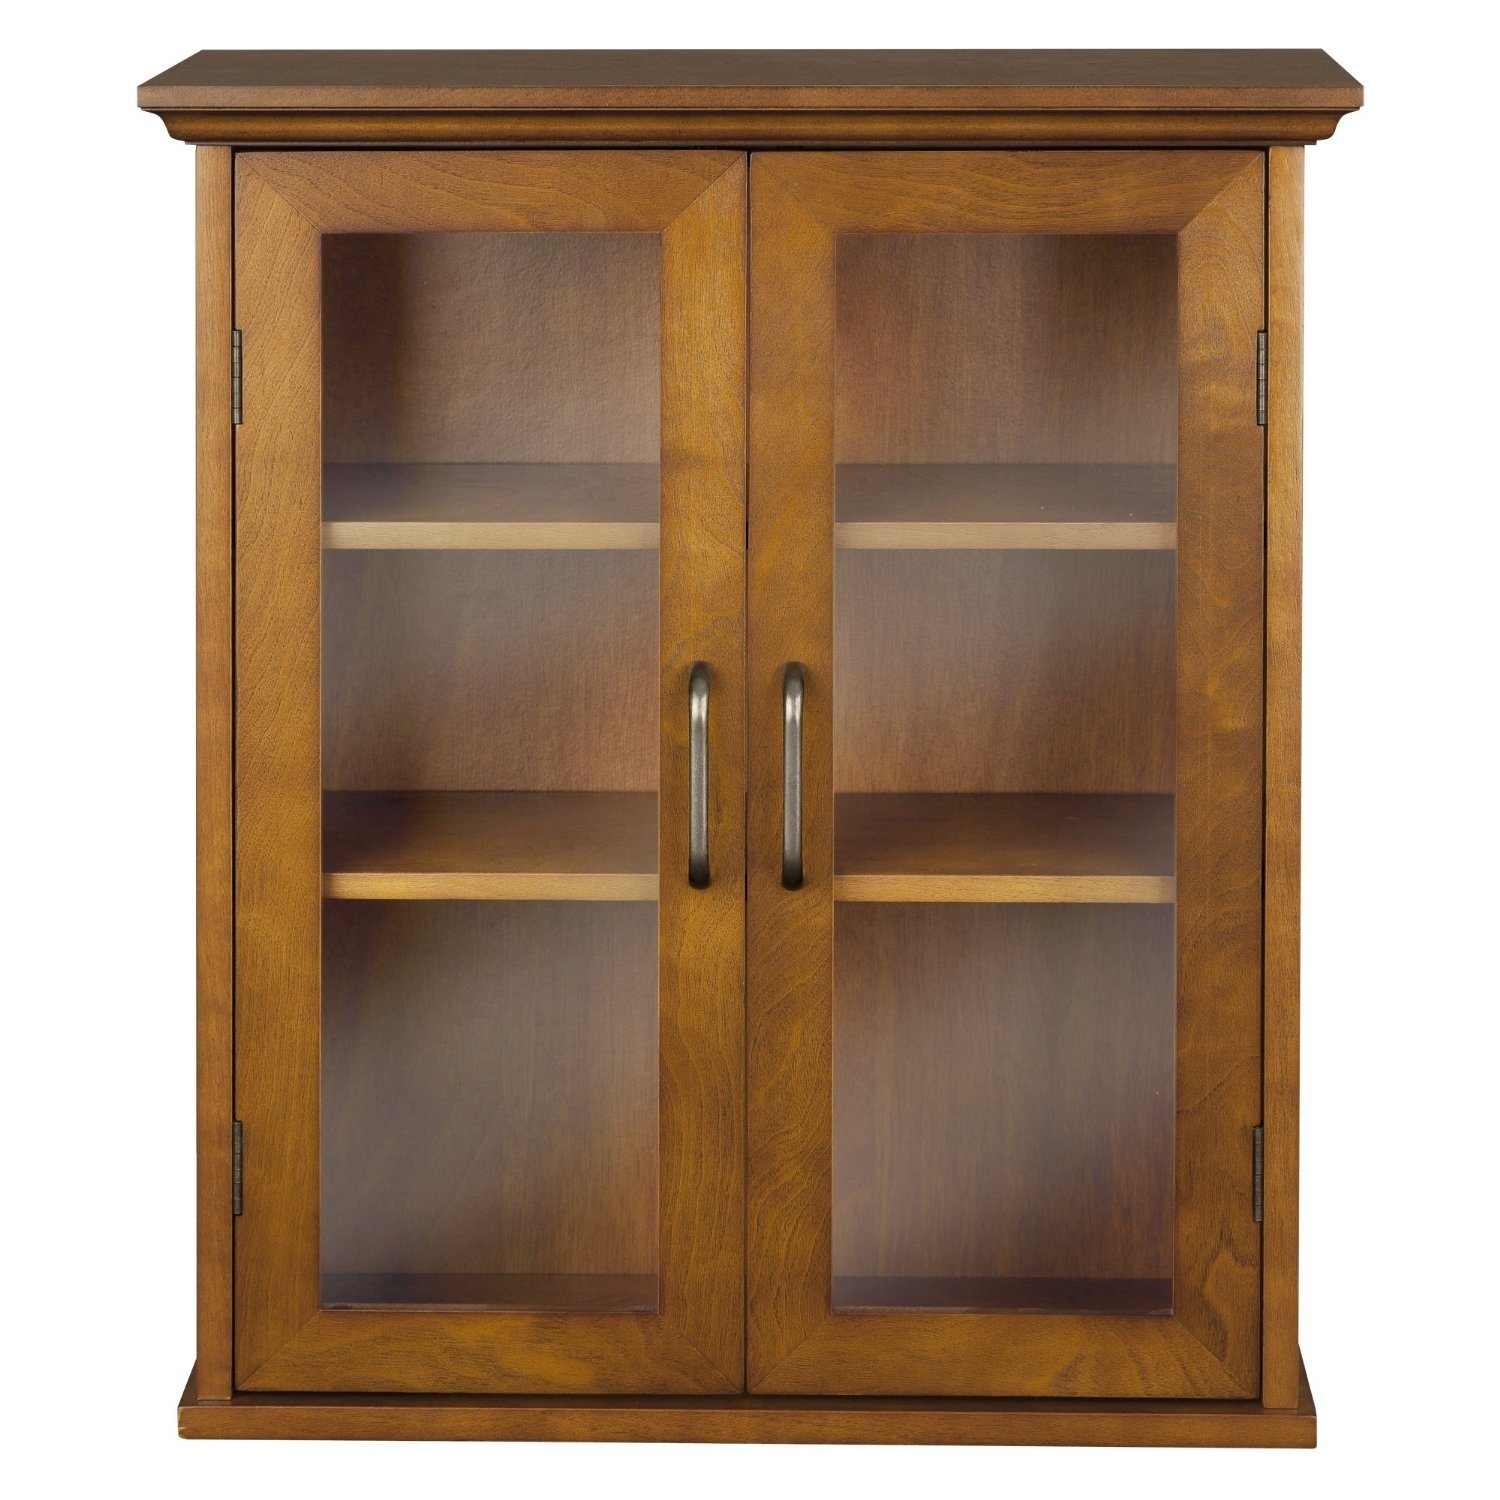 Cheap Glass Cabinet Doors Find Glass Cabinet Doors Deals On Line At